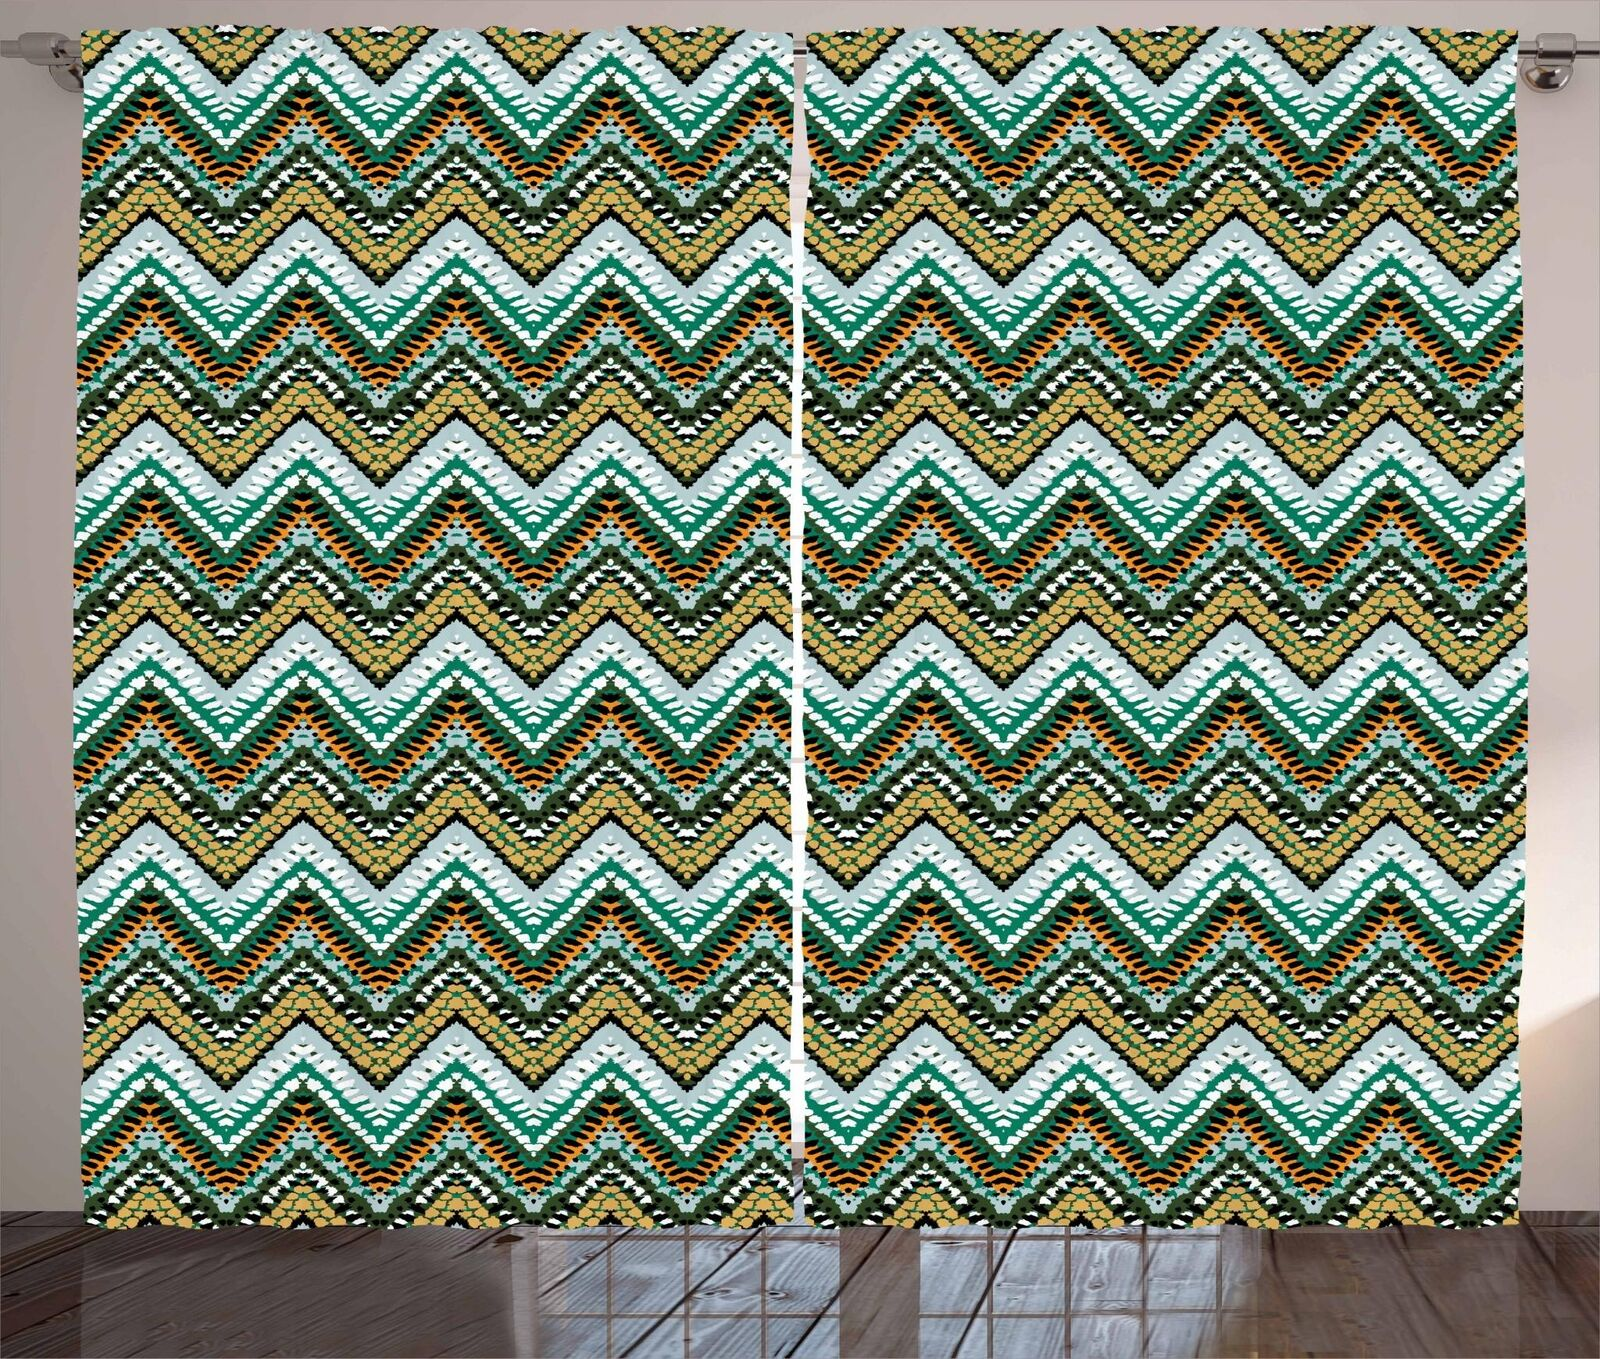 Farbeful Geometric Curtains 2 Panel Set for Decor 5 Größes Window Drapes